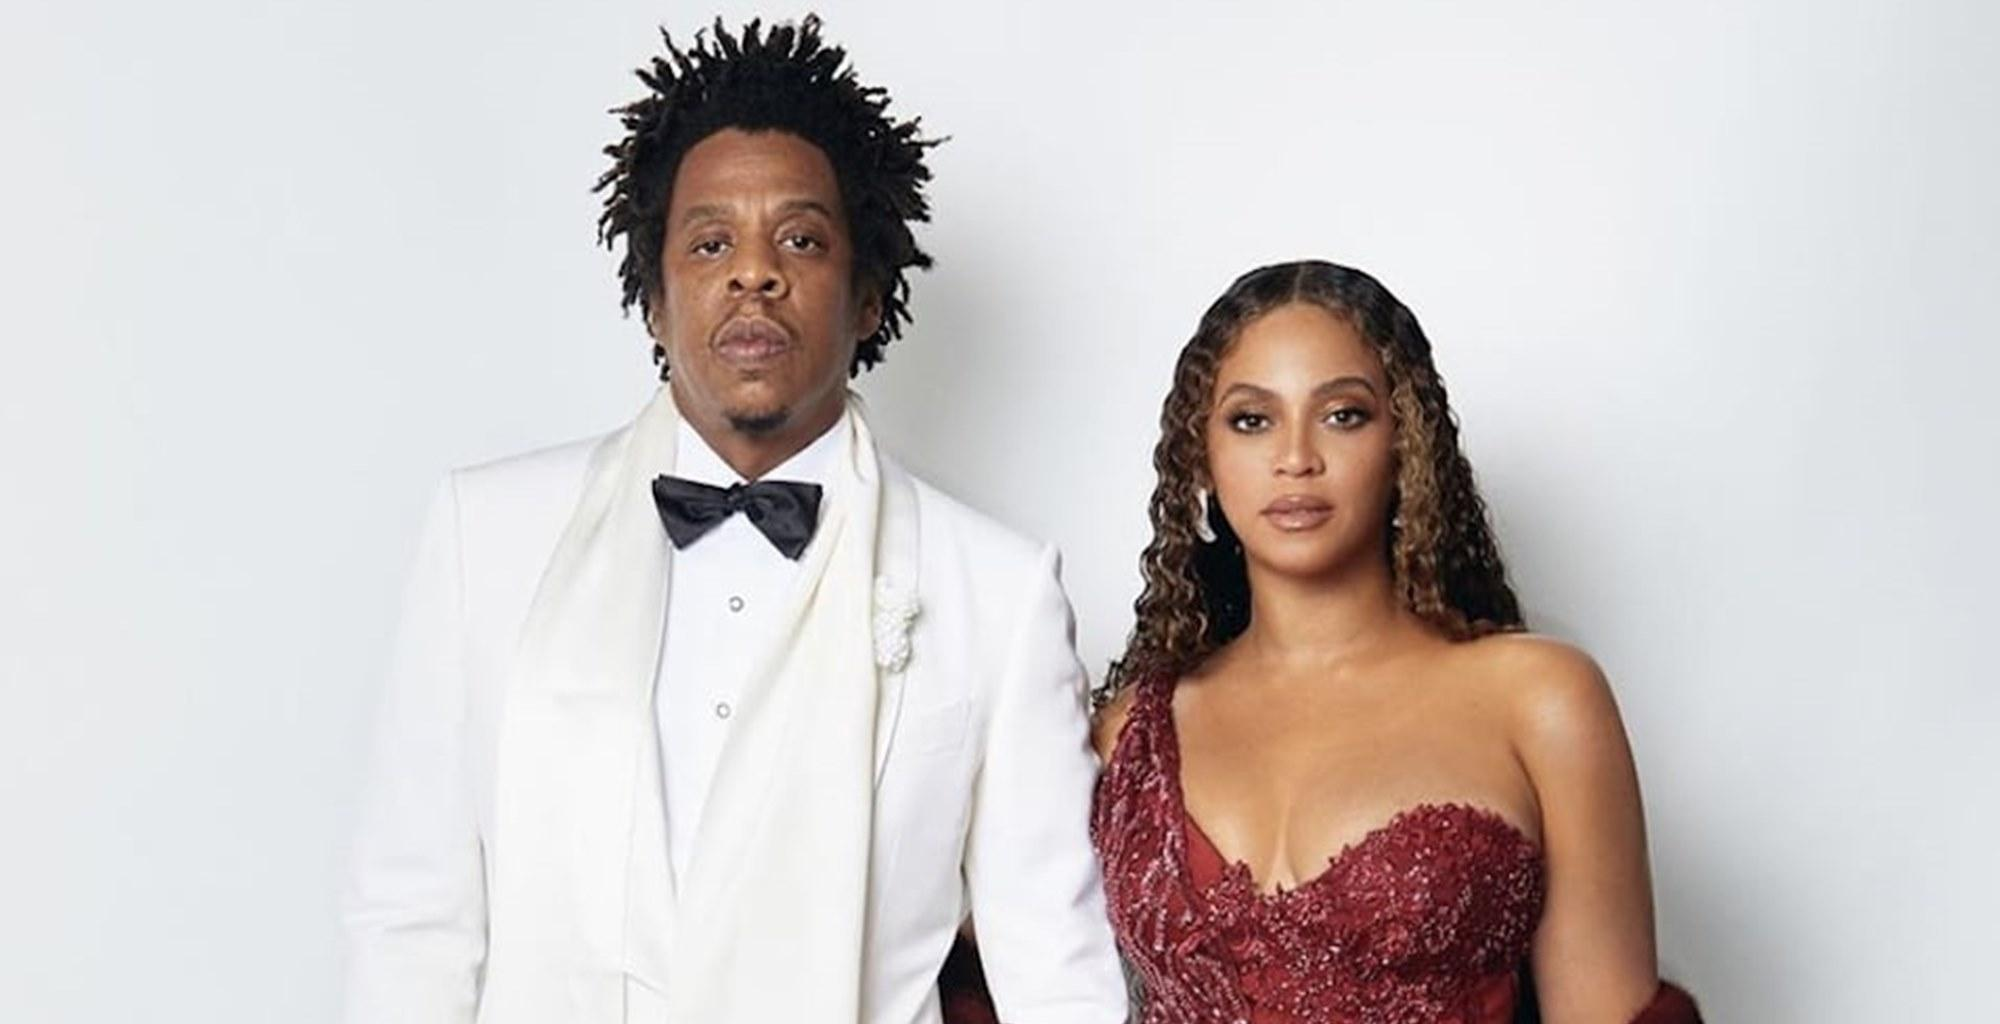 Beyonce And Jay-Z's Breathtaking Swimming Pool Has Fans Going Wild Thanks To This Picture